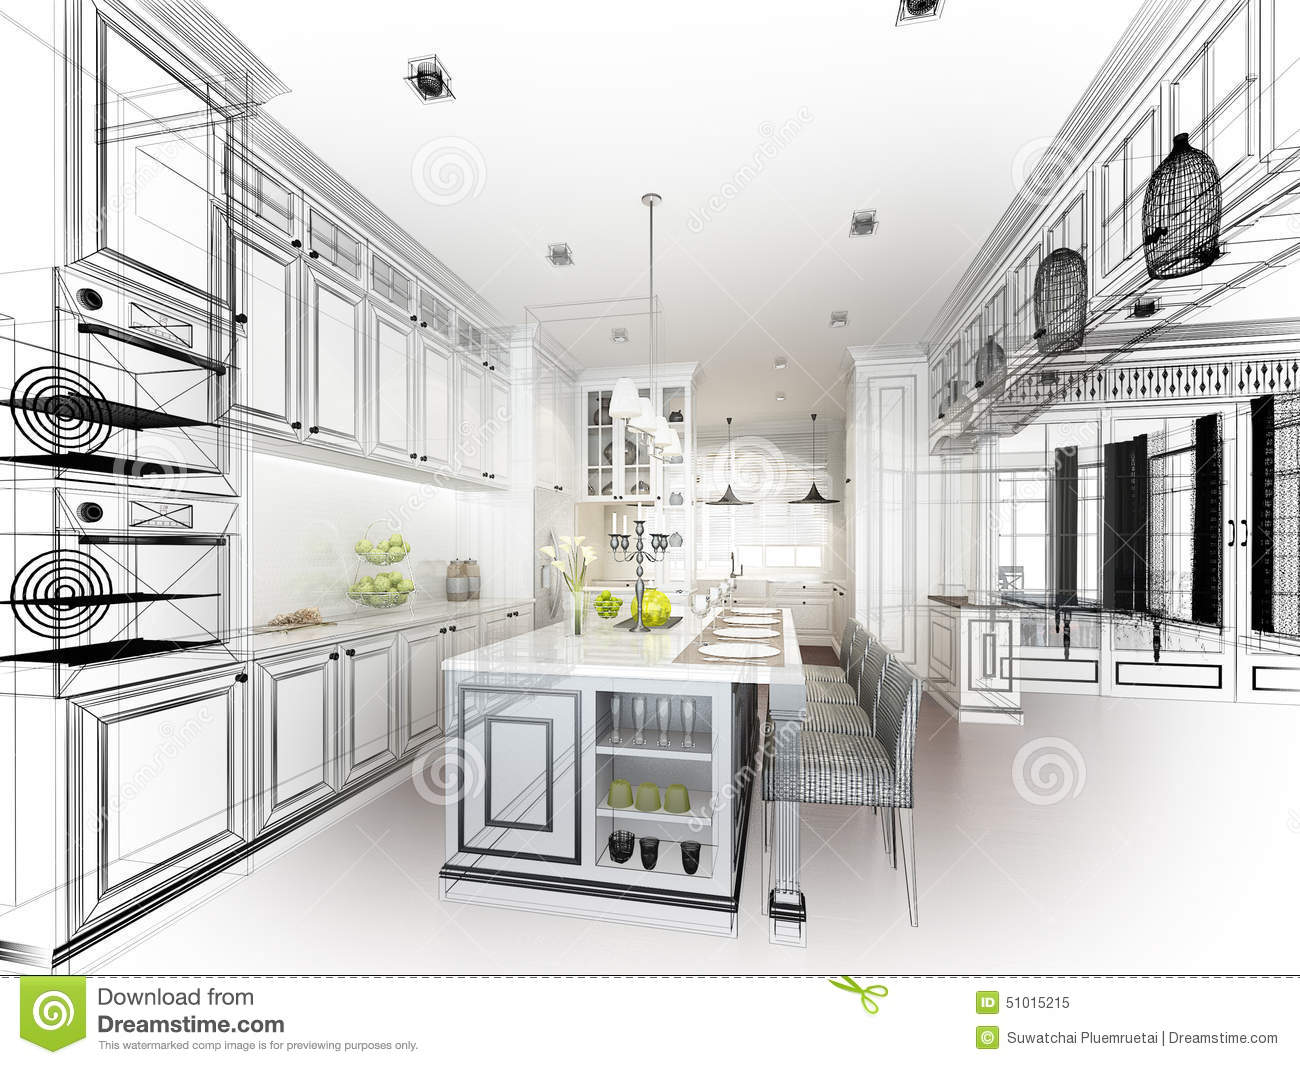 Abstract Sketch Design Of Interior Kitchen Stock Illustration